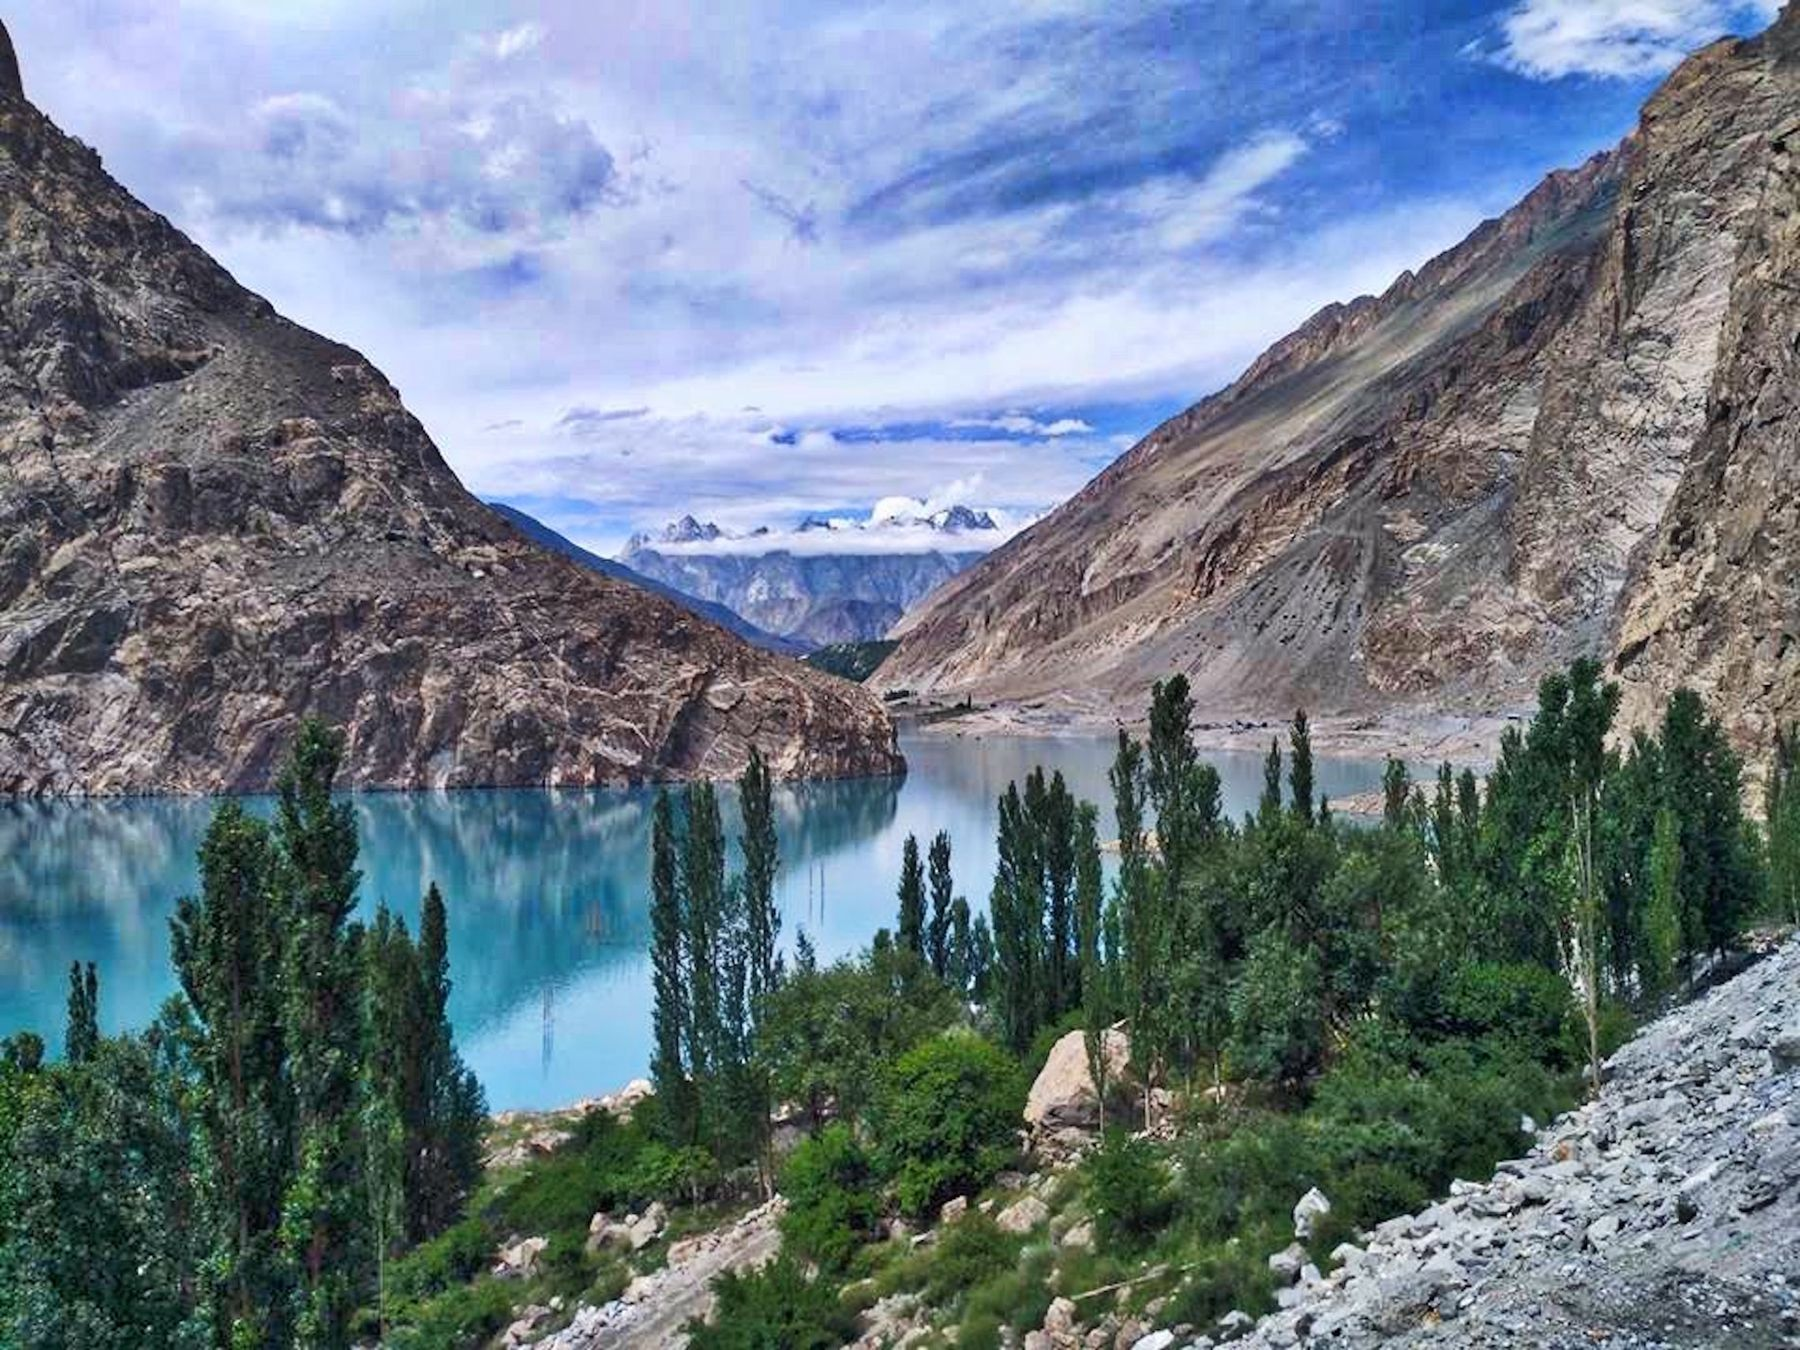 lake and mountains in northern pakistan